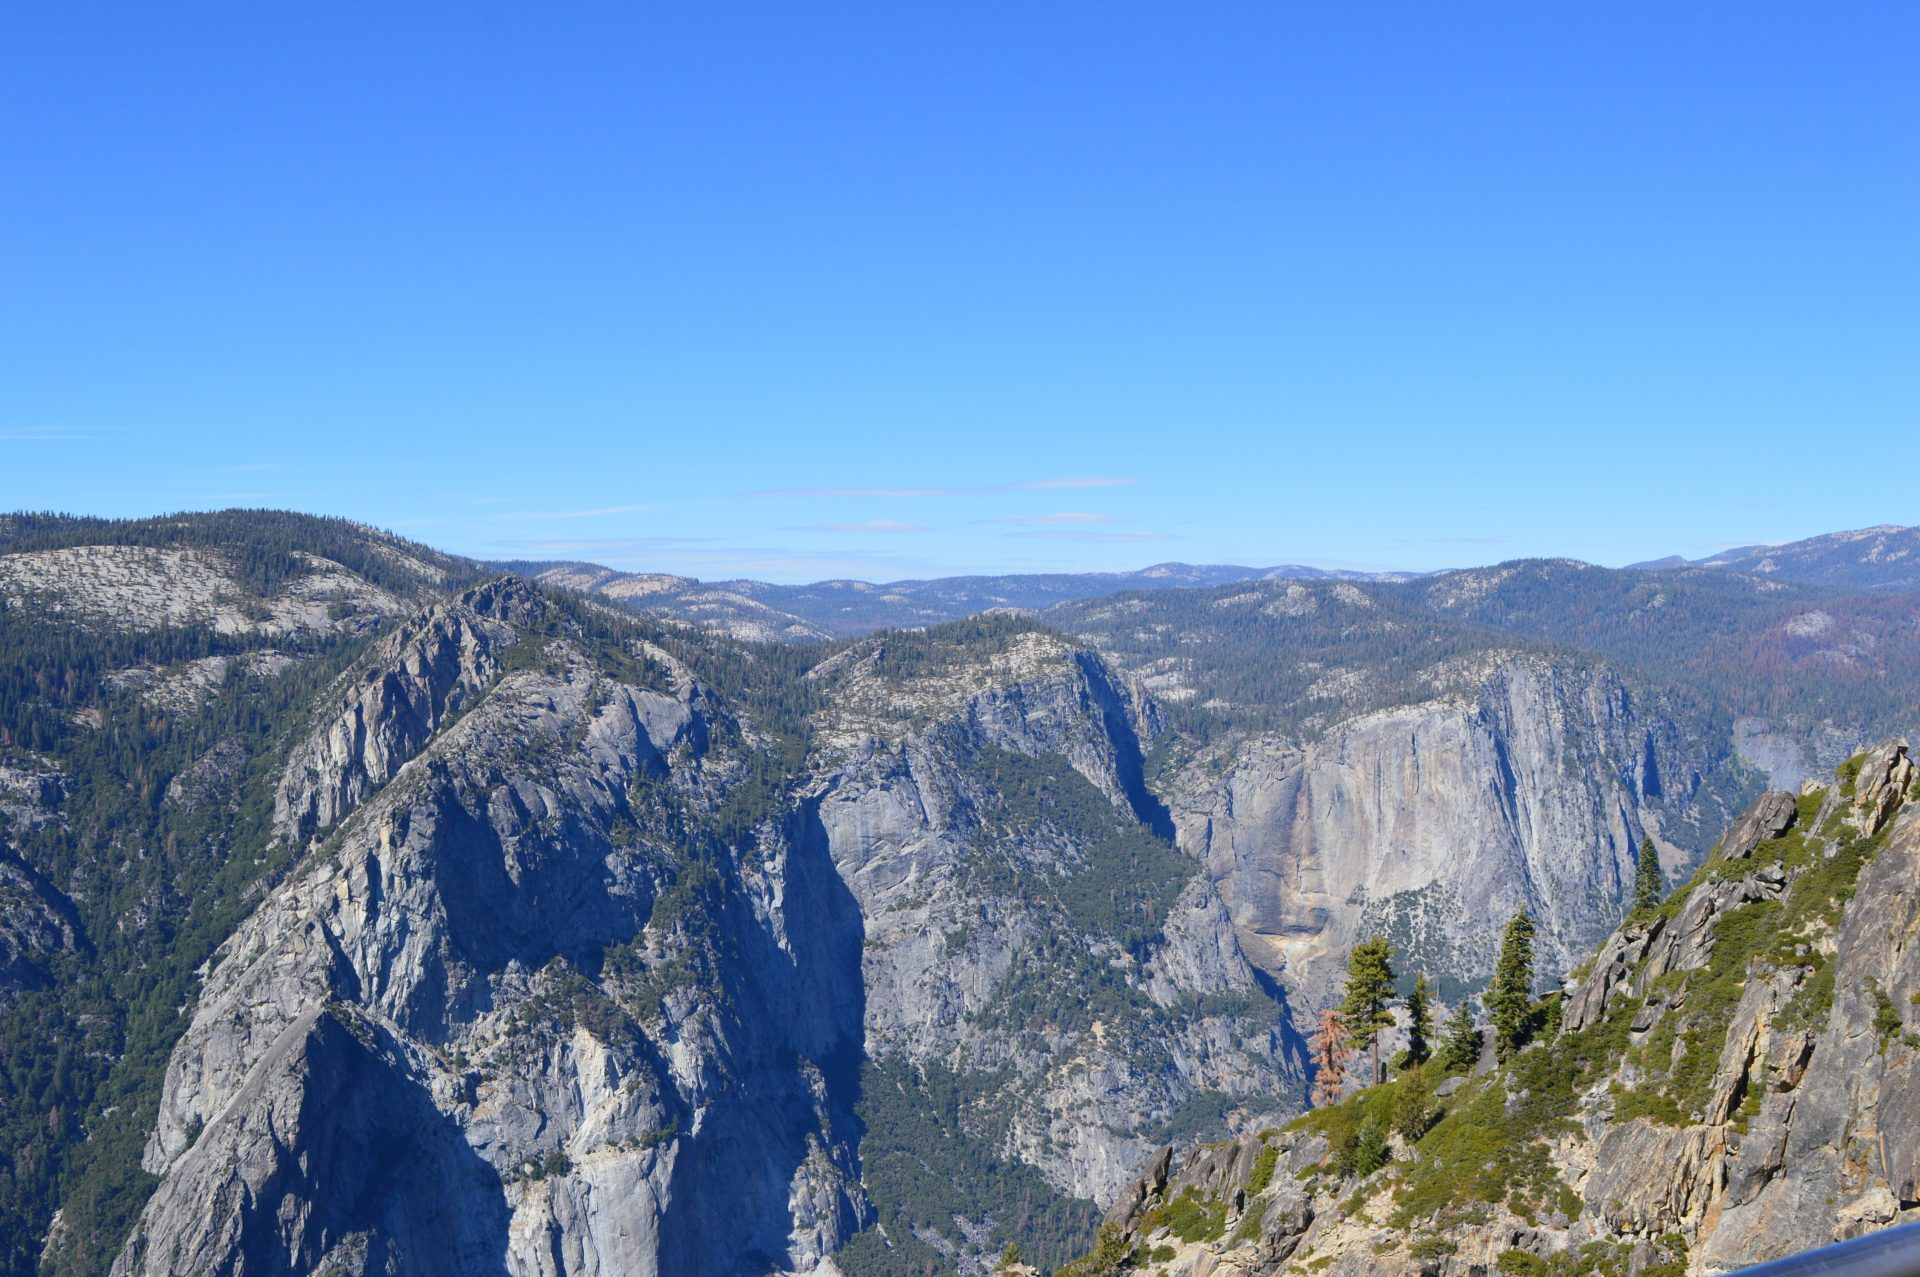 The view from Taft Point